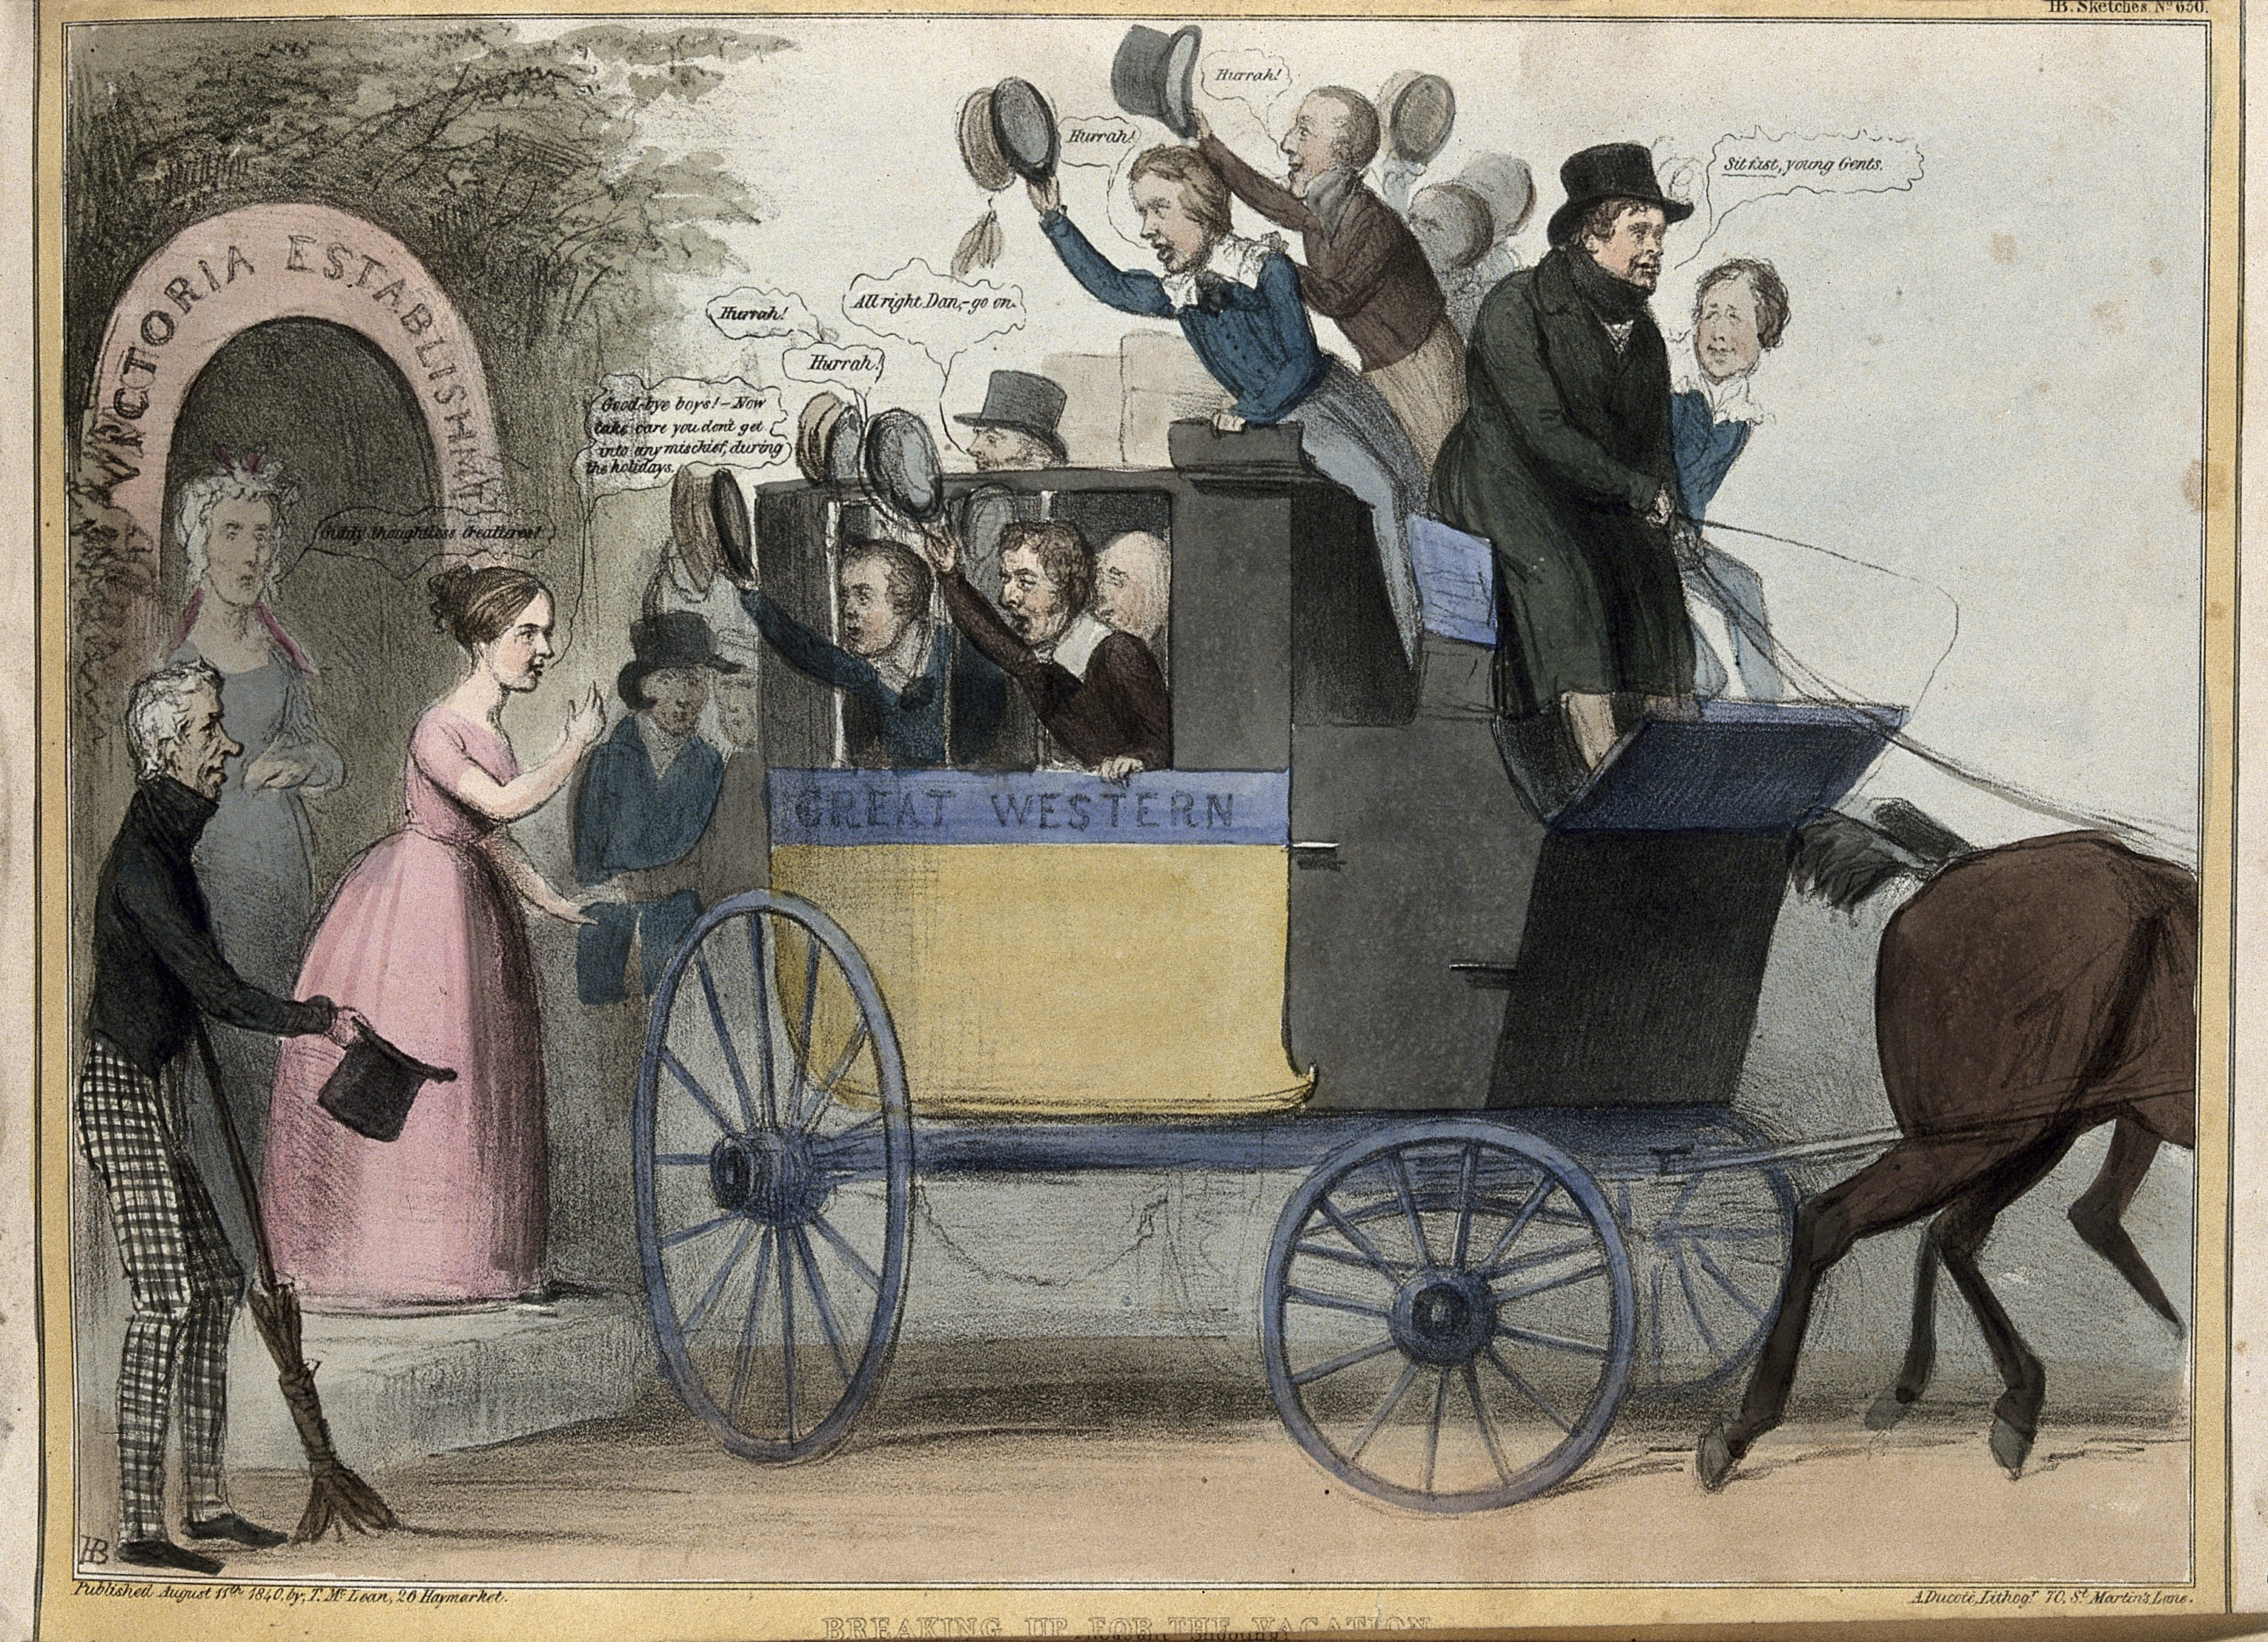 """V0050274 Daniel O'Connell drives a coach containing cheering schoolbo Credit: Wellcome Library, London. Wellcome Images images@wellcome.ac.uk http://wellcomeimages.org Daniel O'Connell drives a coach containing cheering schoolboy politicians that departs from the """"Victoria Establishment"""". Coloured lithograph by H.B. (John Doyle), 1840. 1840 By: John DoylePublished: 11 August 1840 Copyrighted work available under Creative Commons Attribution only licence CC BY 4.0 http://creativecommons.org/licenses/by/4.0/"""